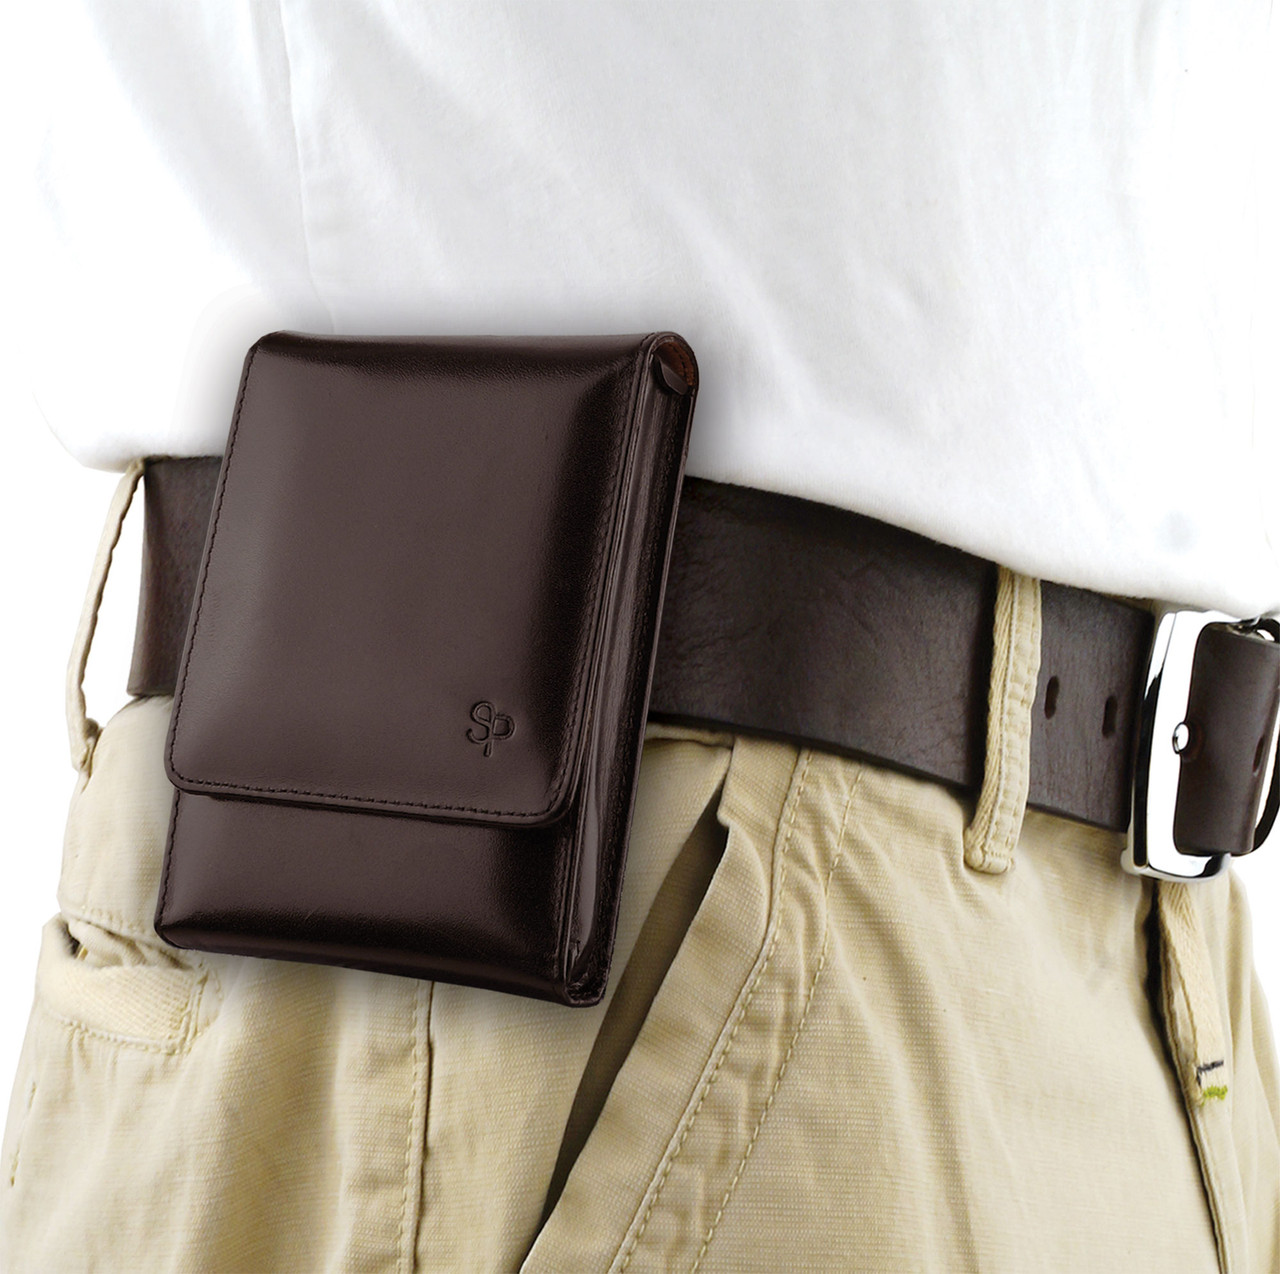 Ruger Security 9 Compact Brown Leather Series Holster